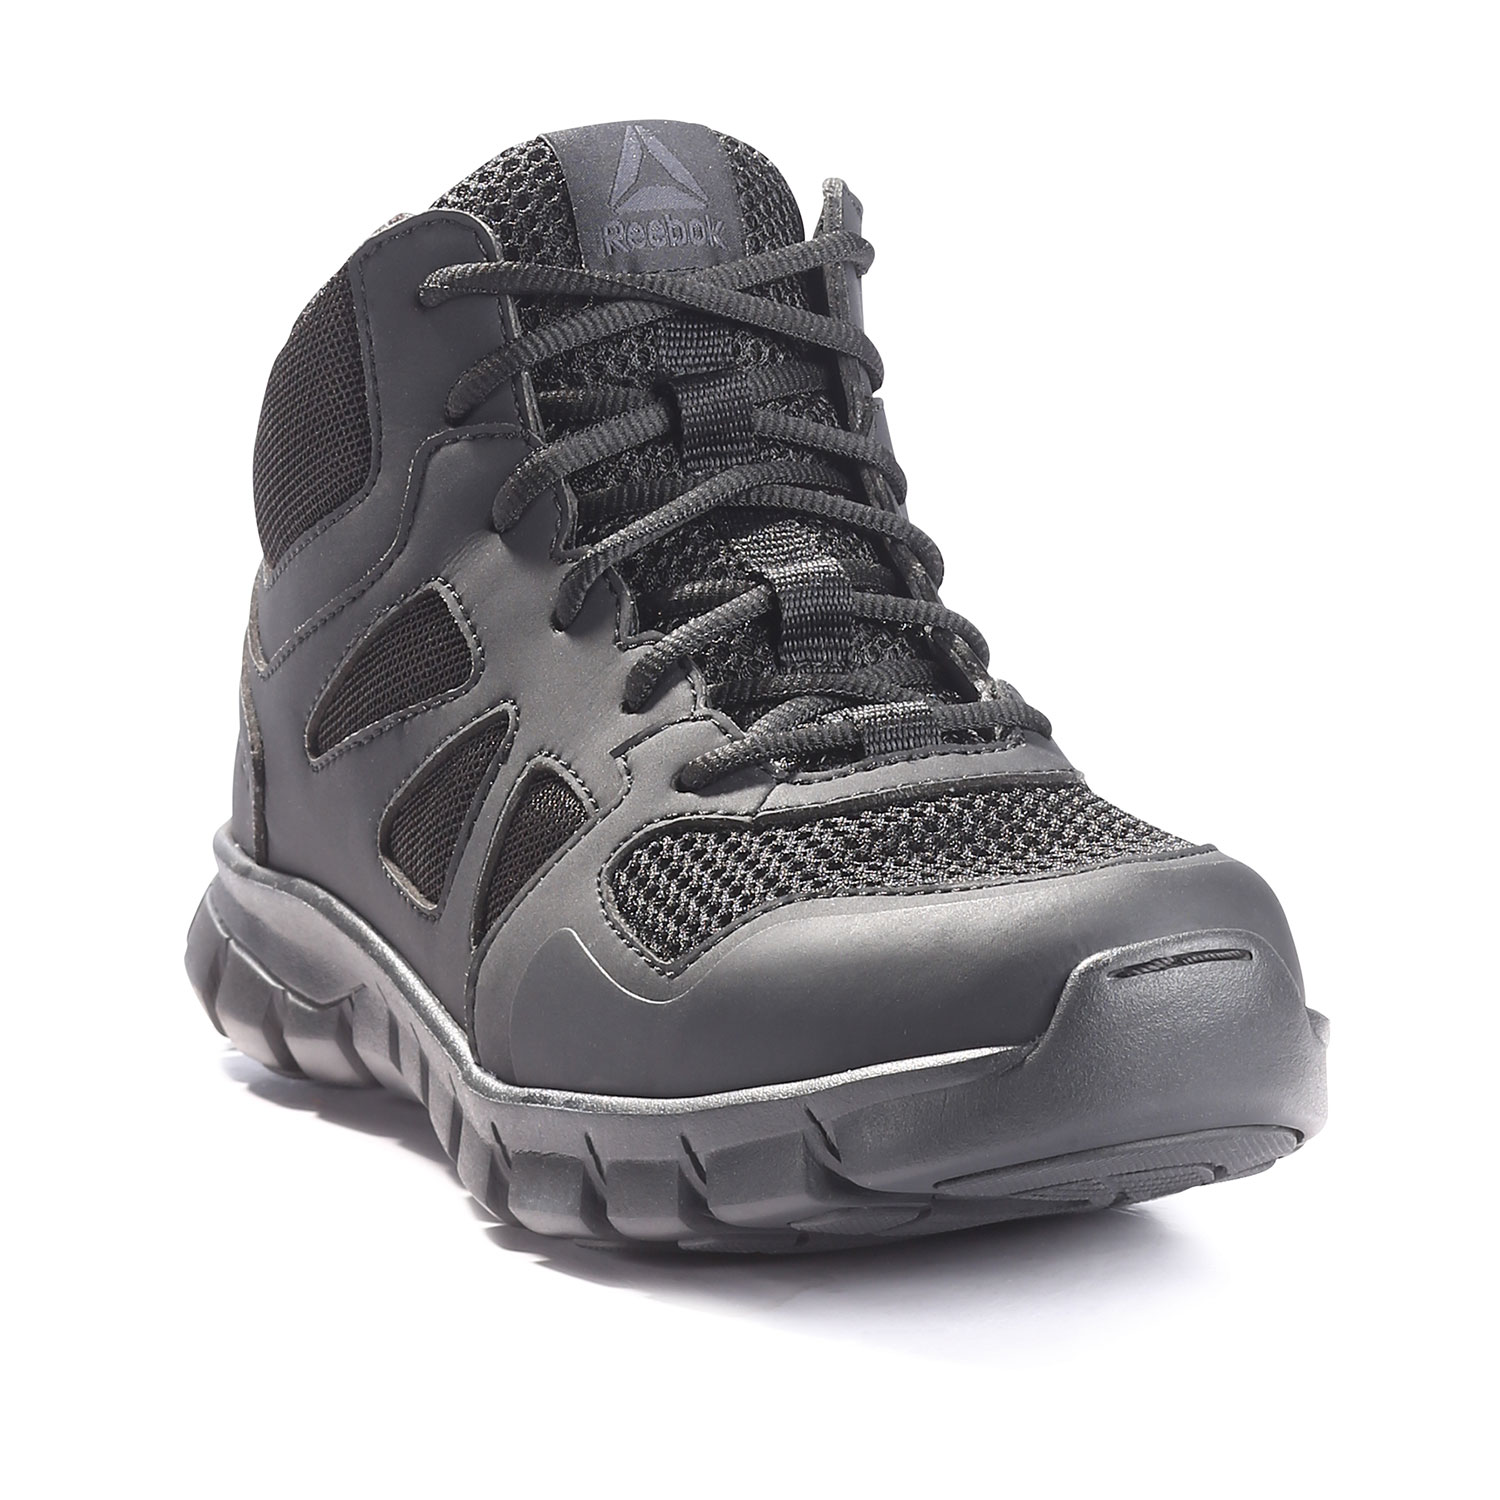 7236d9852f5515 Reebok Sublite Cushion Tactical Mid